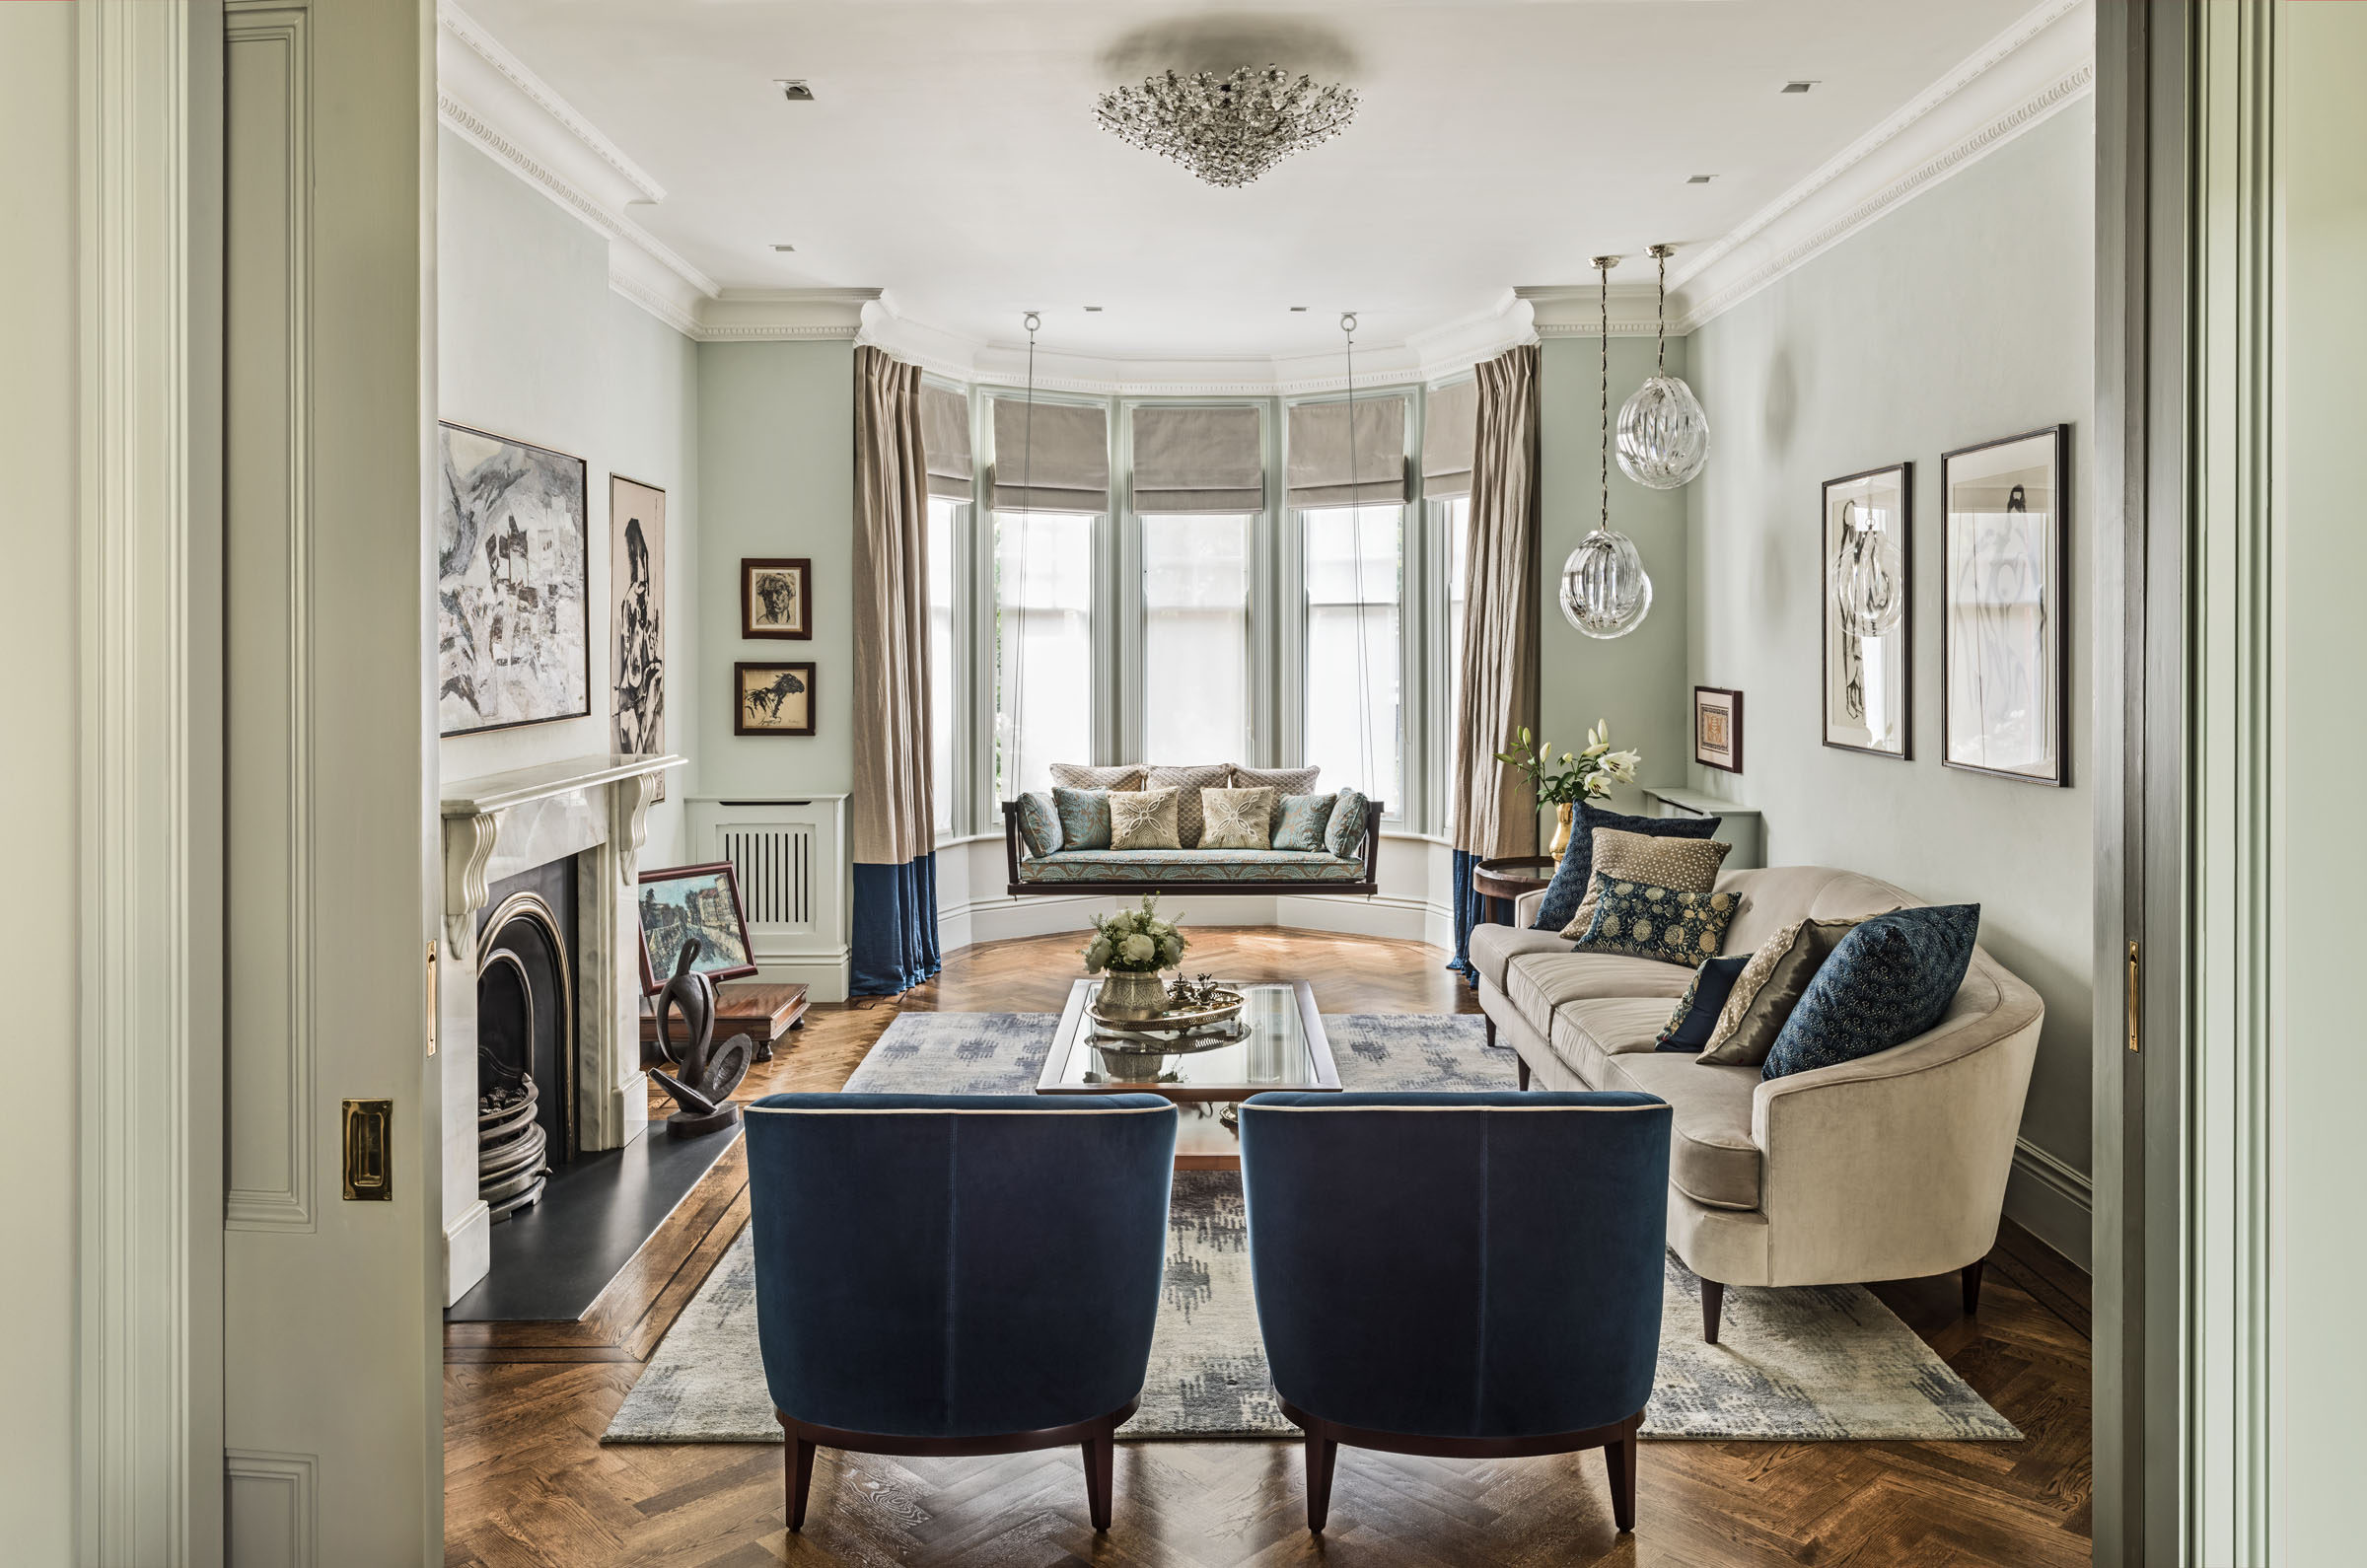 South hampstead house london luxury interior design for Top british interior designers